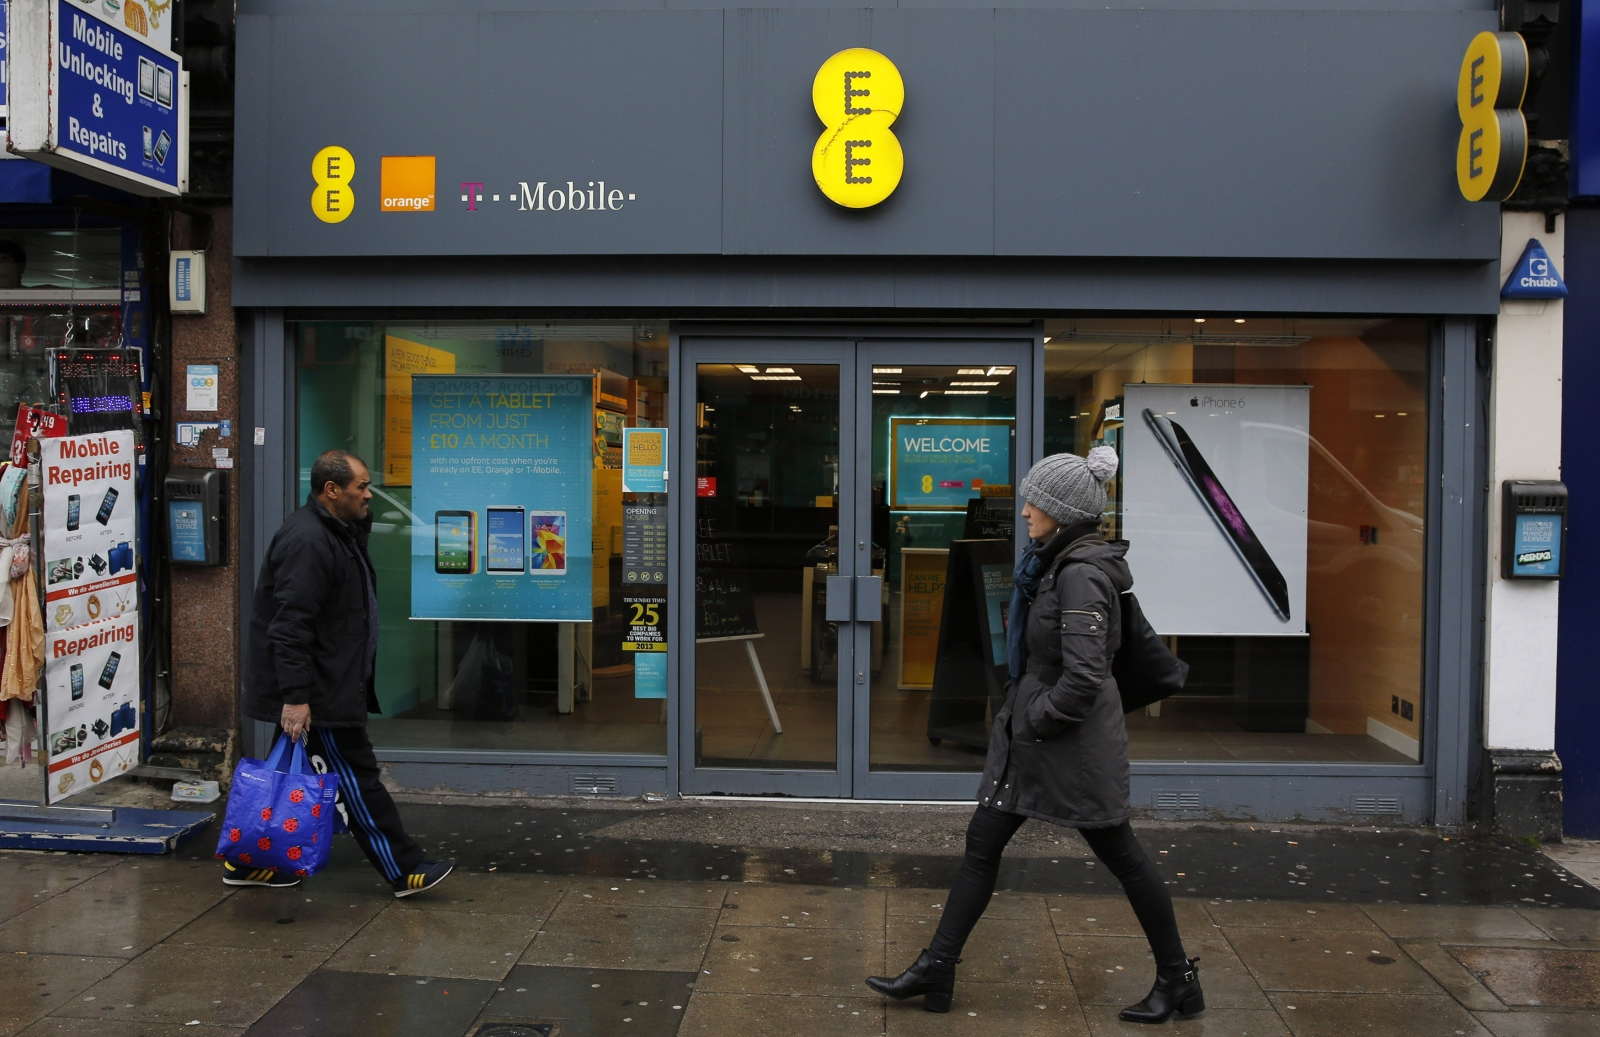 UK mobile operator EE (formerly T-Mobile Orange)